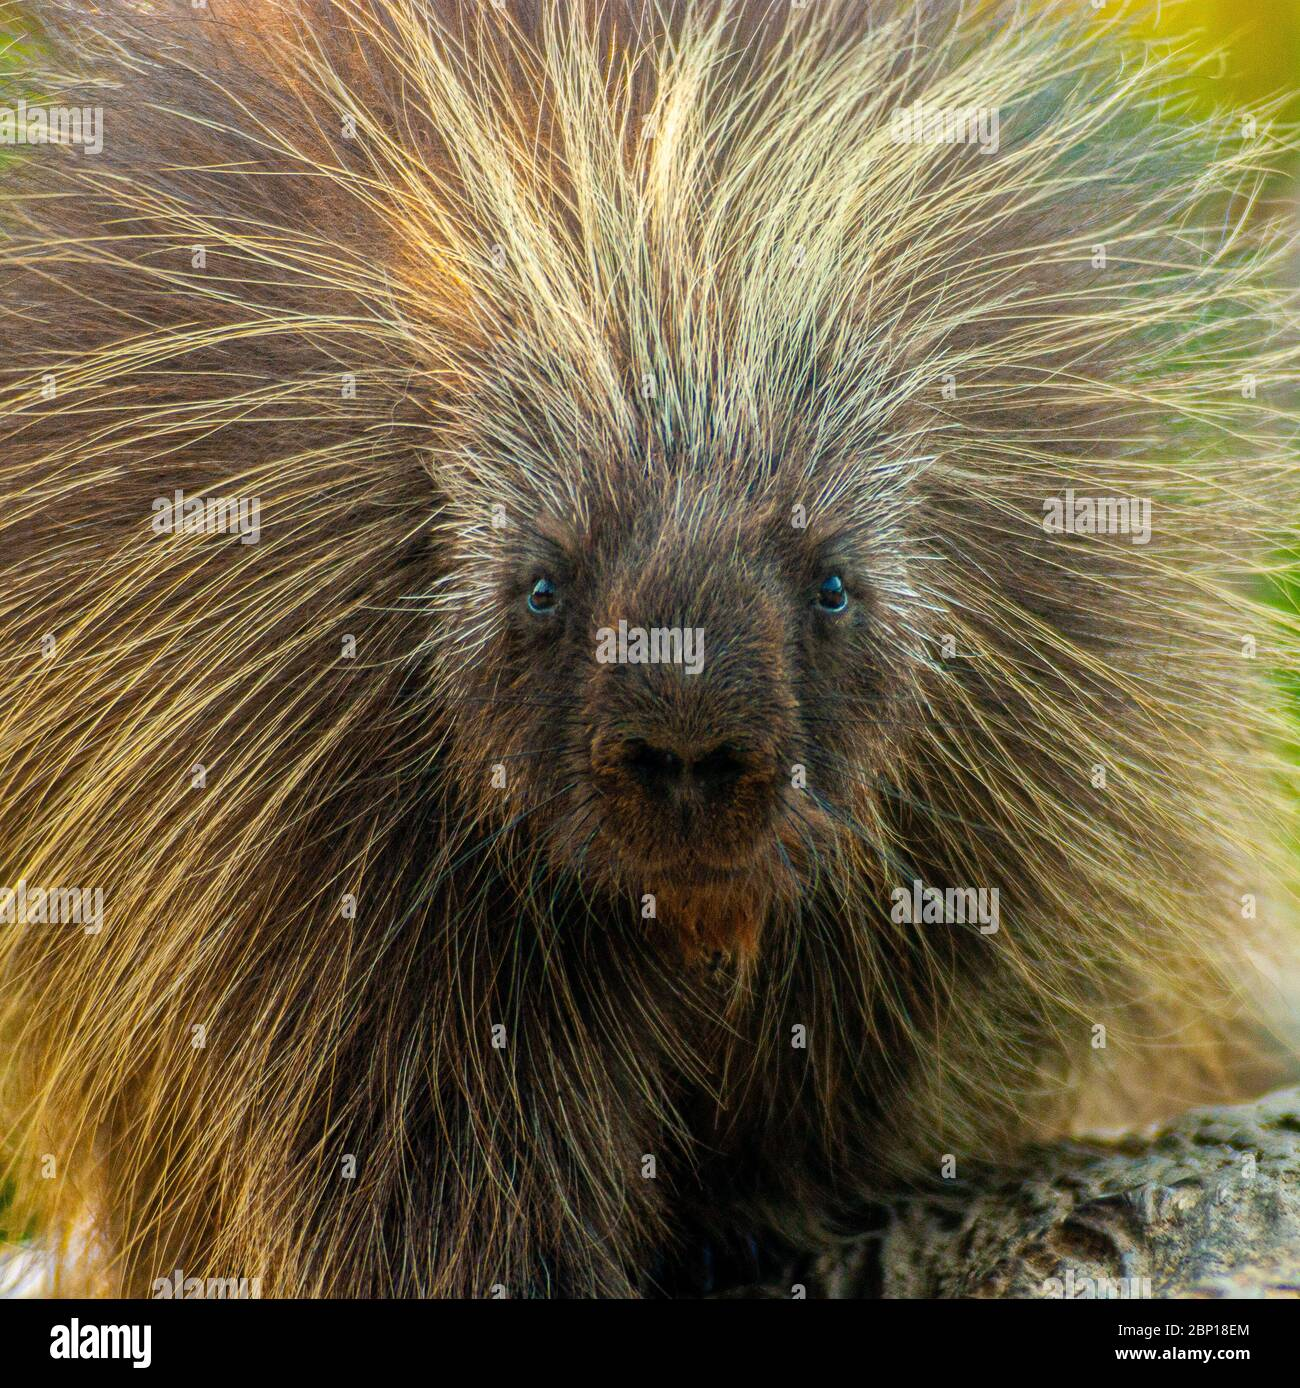 Porcupine Looking at the Camera Stock Photo